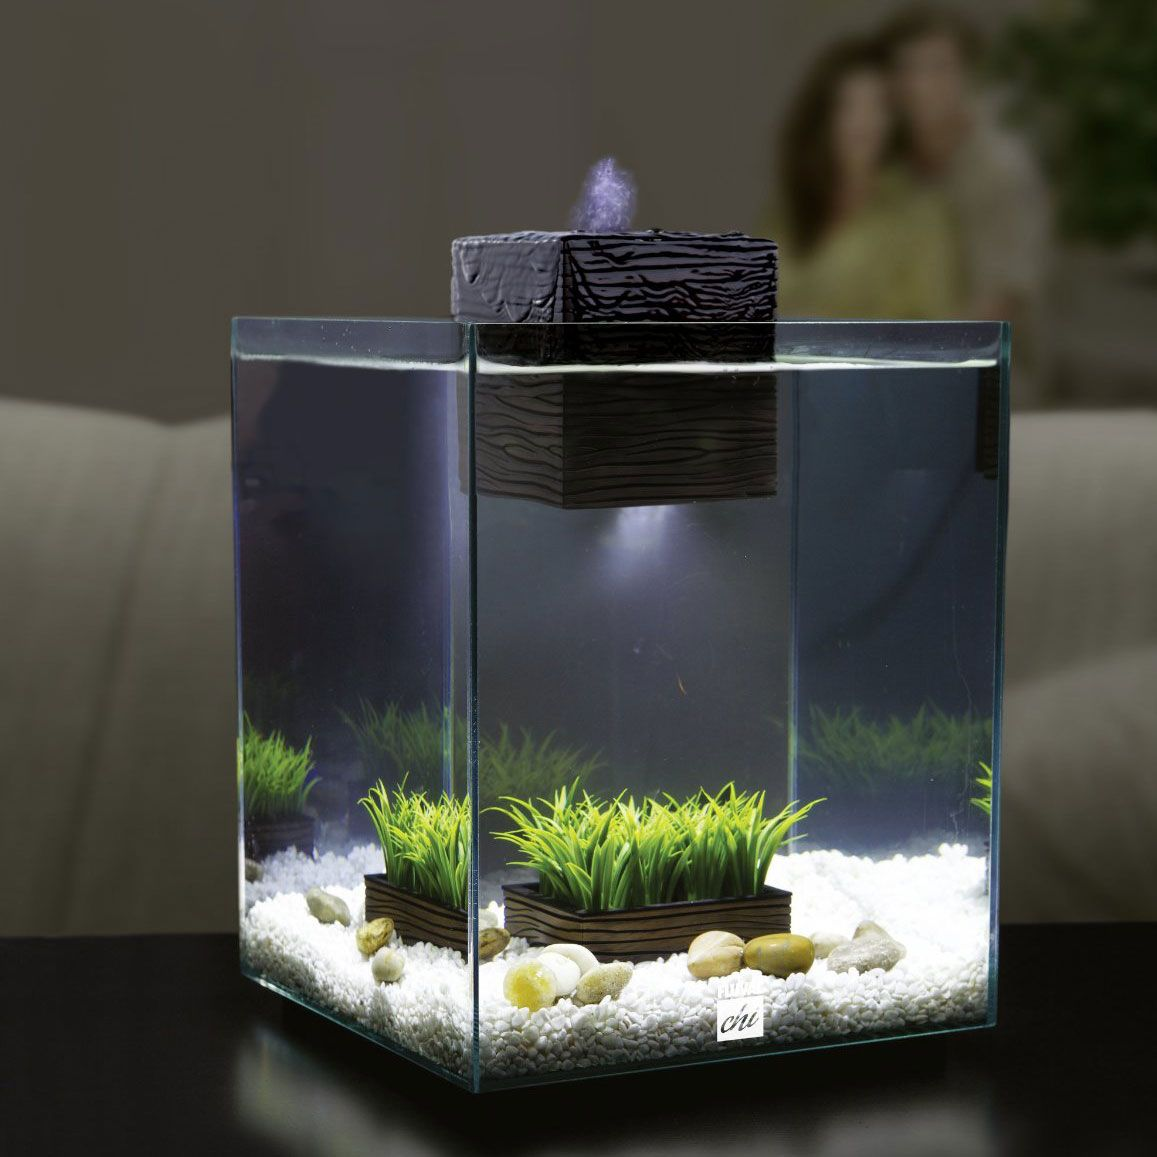 Zen garden aquarium seasonal style let spring in for Decoration zen aquarium